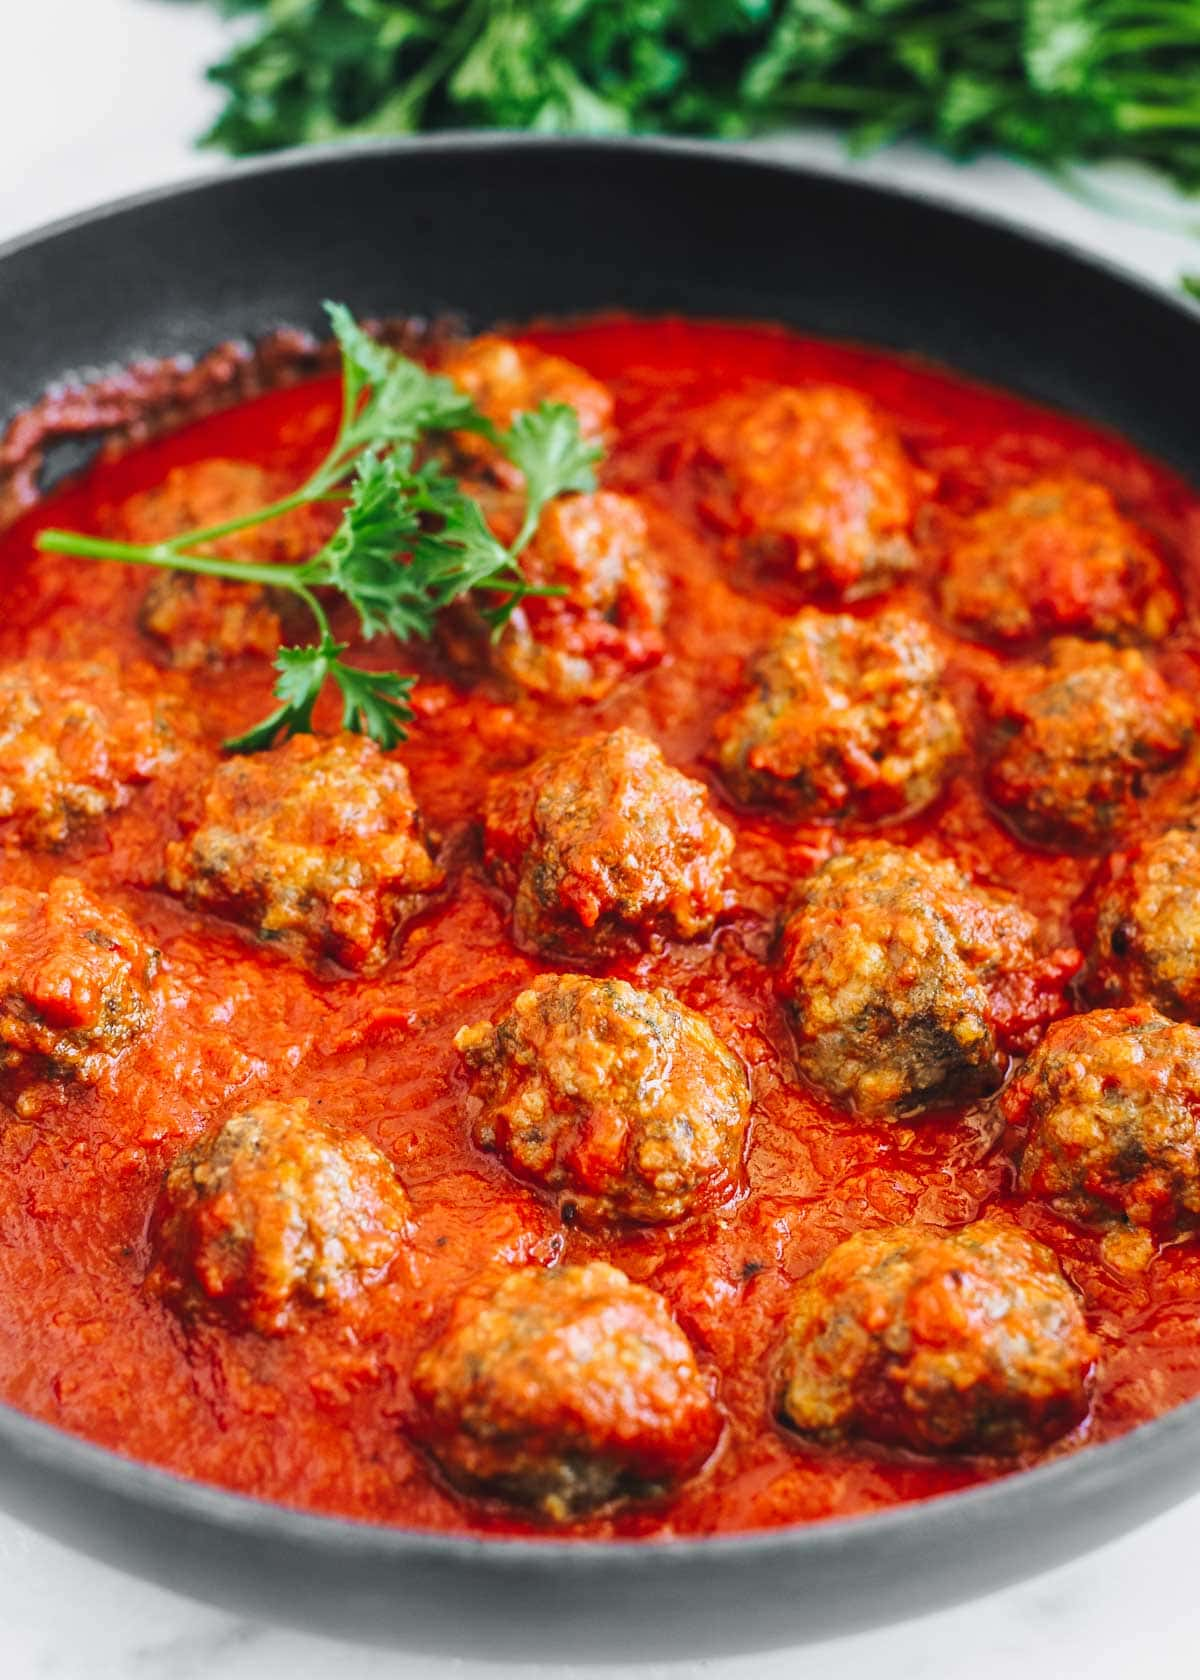 Best Italian meatballs in a skillet of marinara, garnished with parsley.